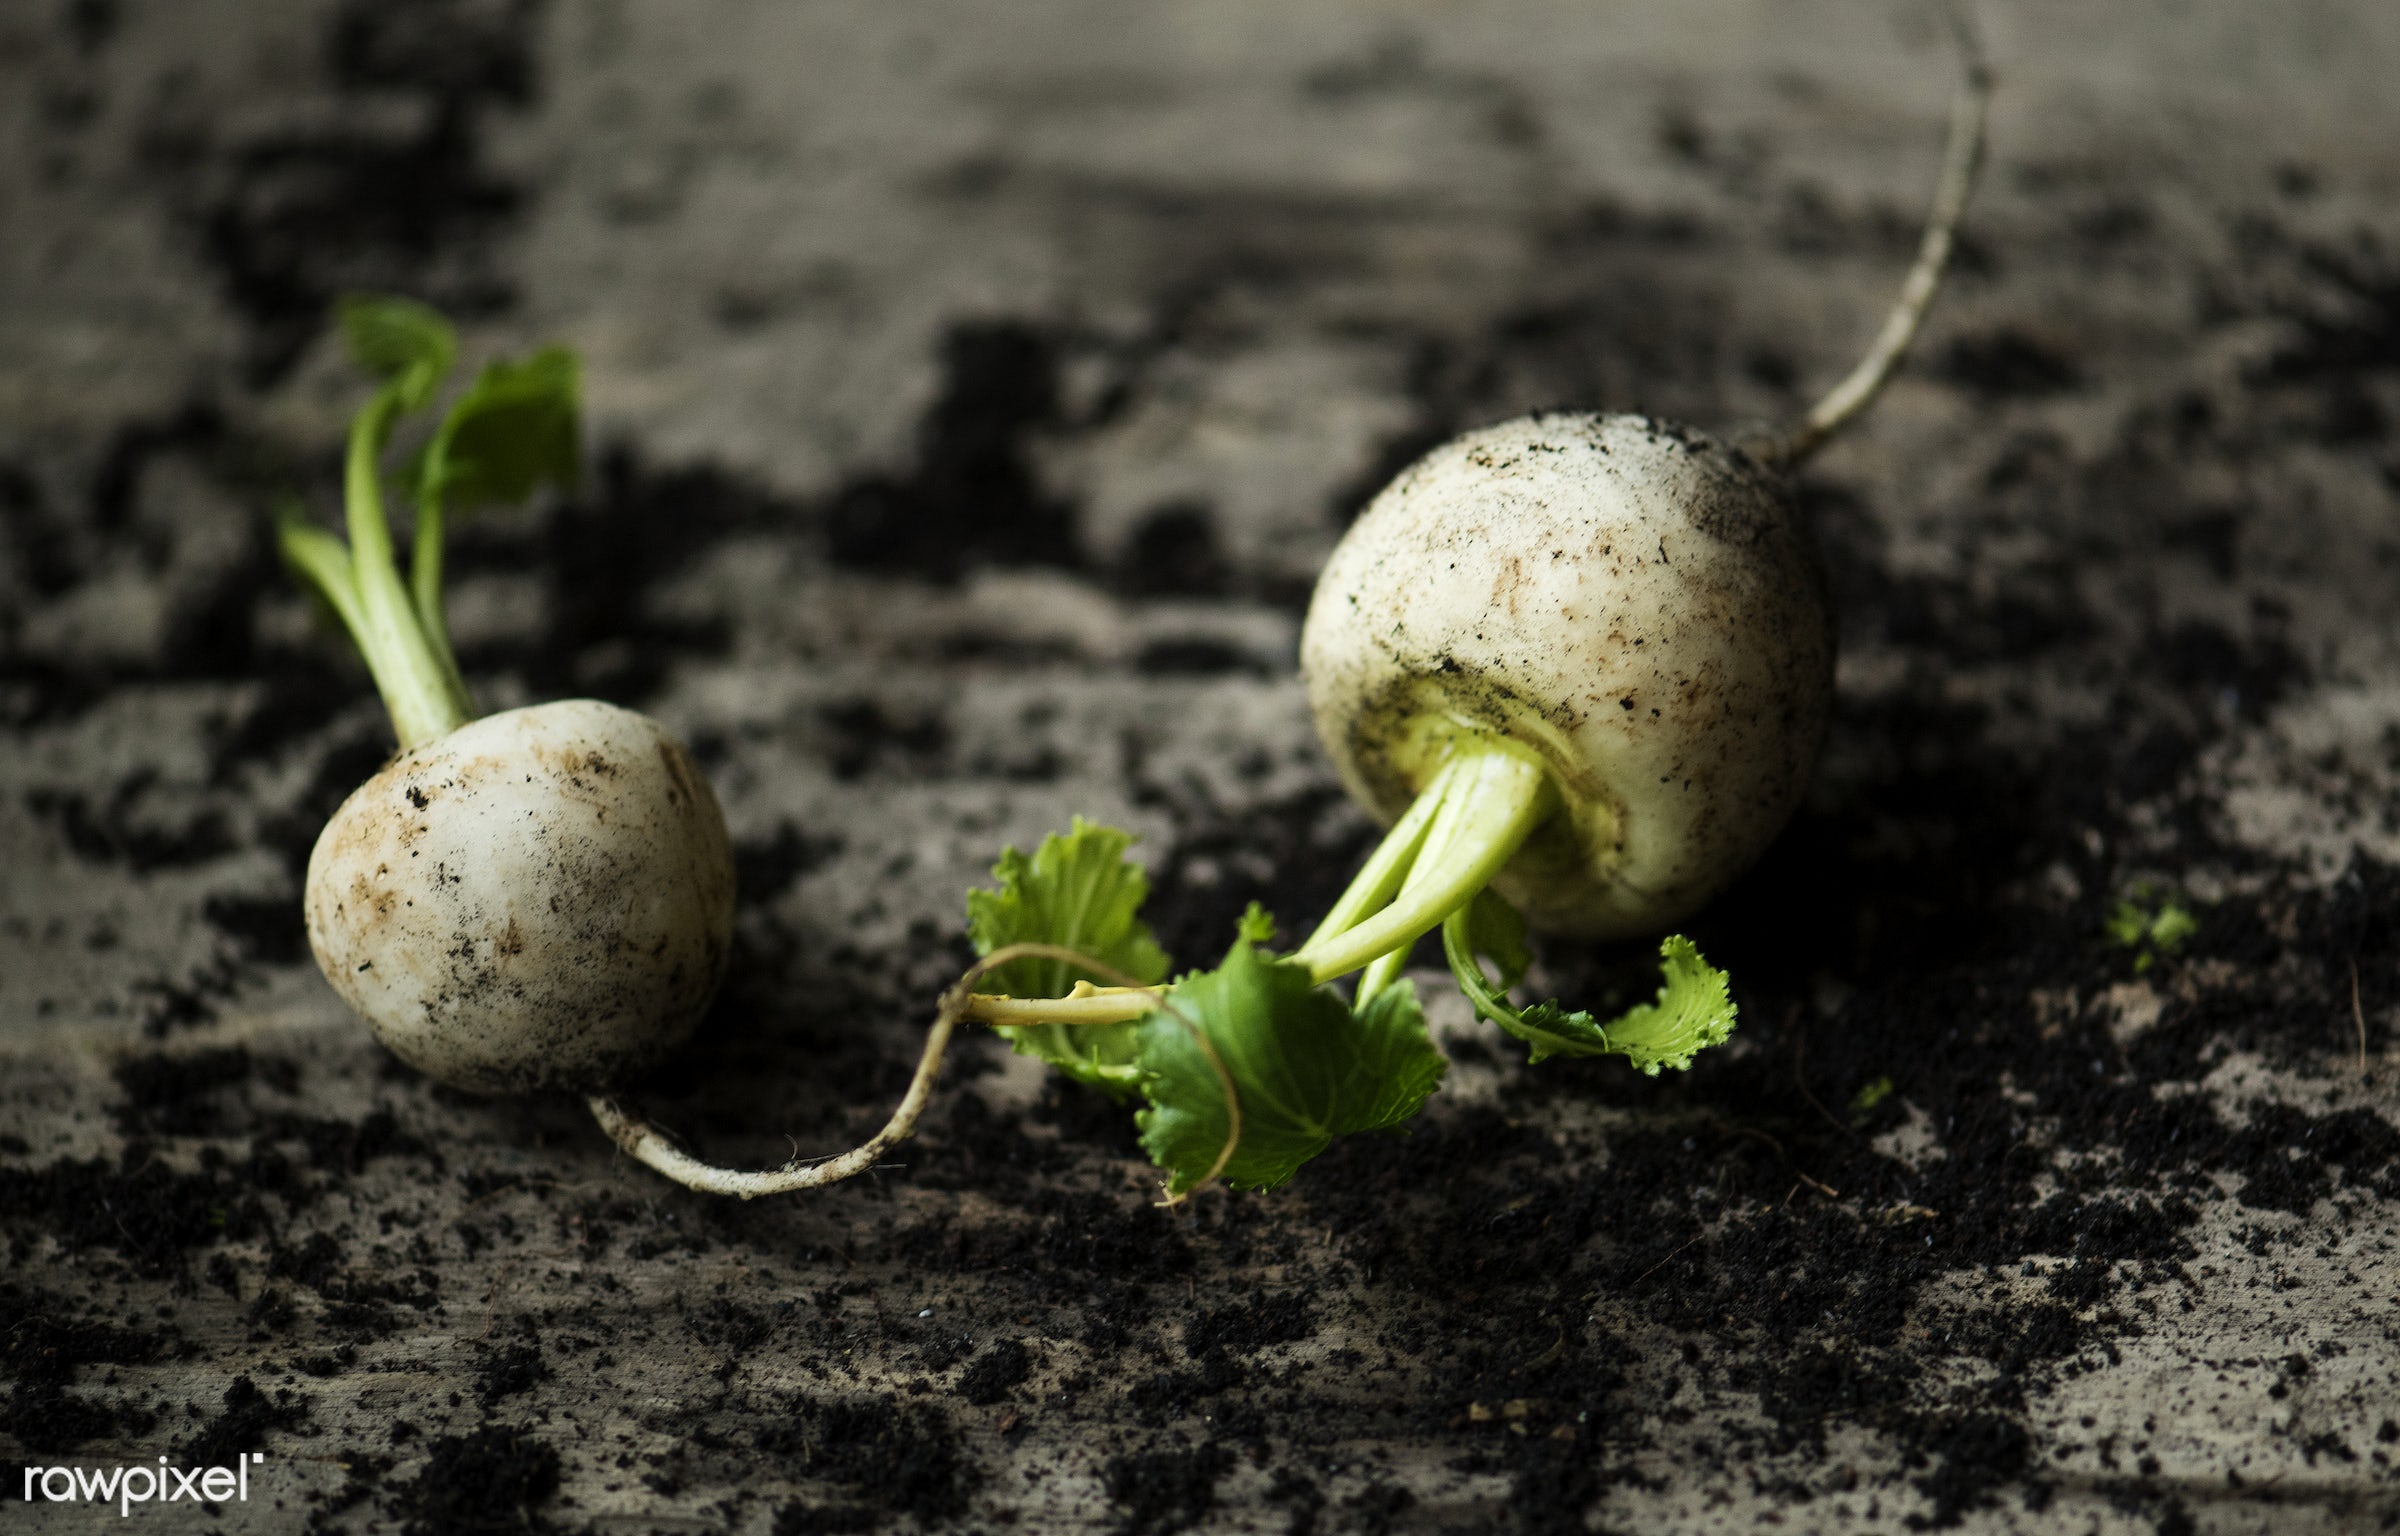 raw, nobody, leaves, real, nature, fresh, dirt, closeup, roots, white, radish, beets, organic, vegetable, wooden table, soil